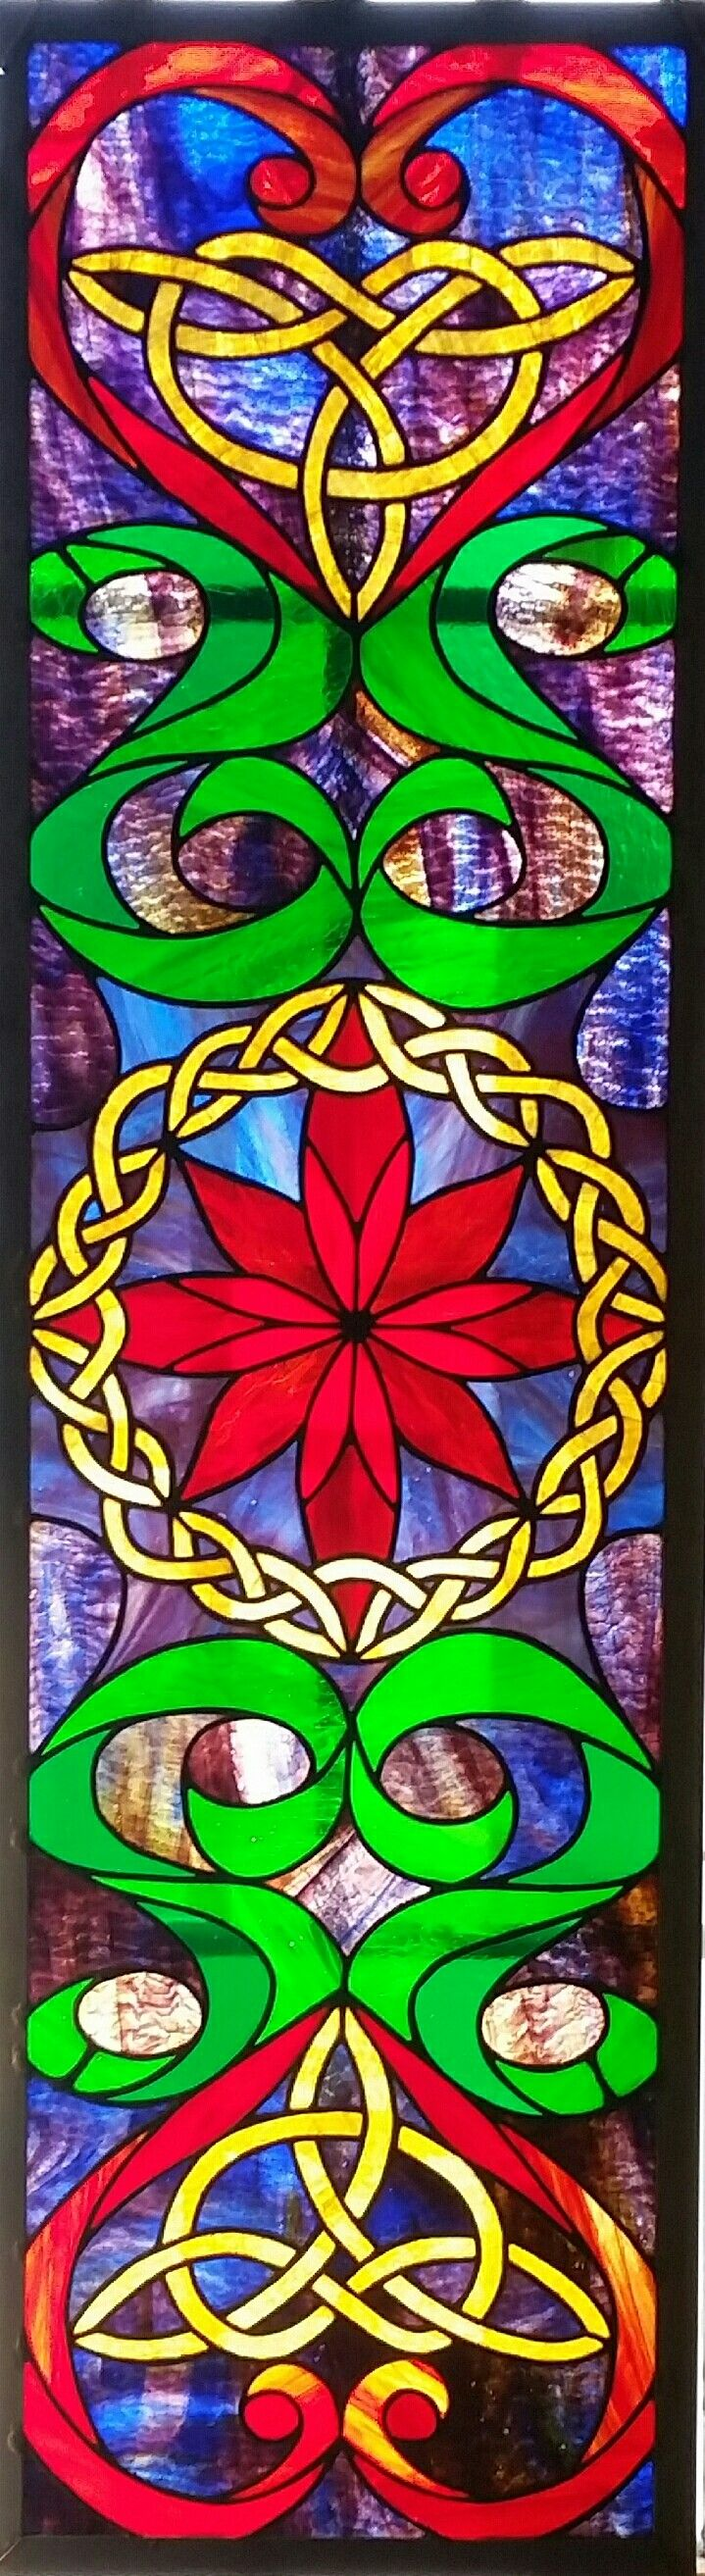 Best 25+ Celtic stained glass ideas on Pinterest